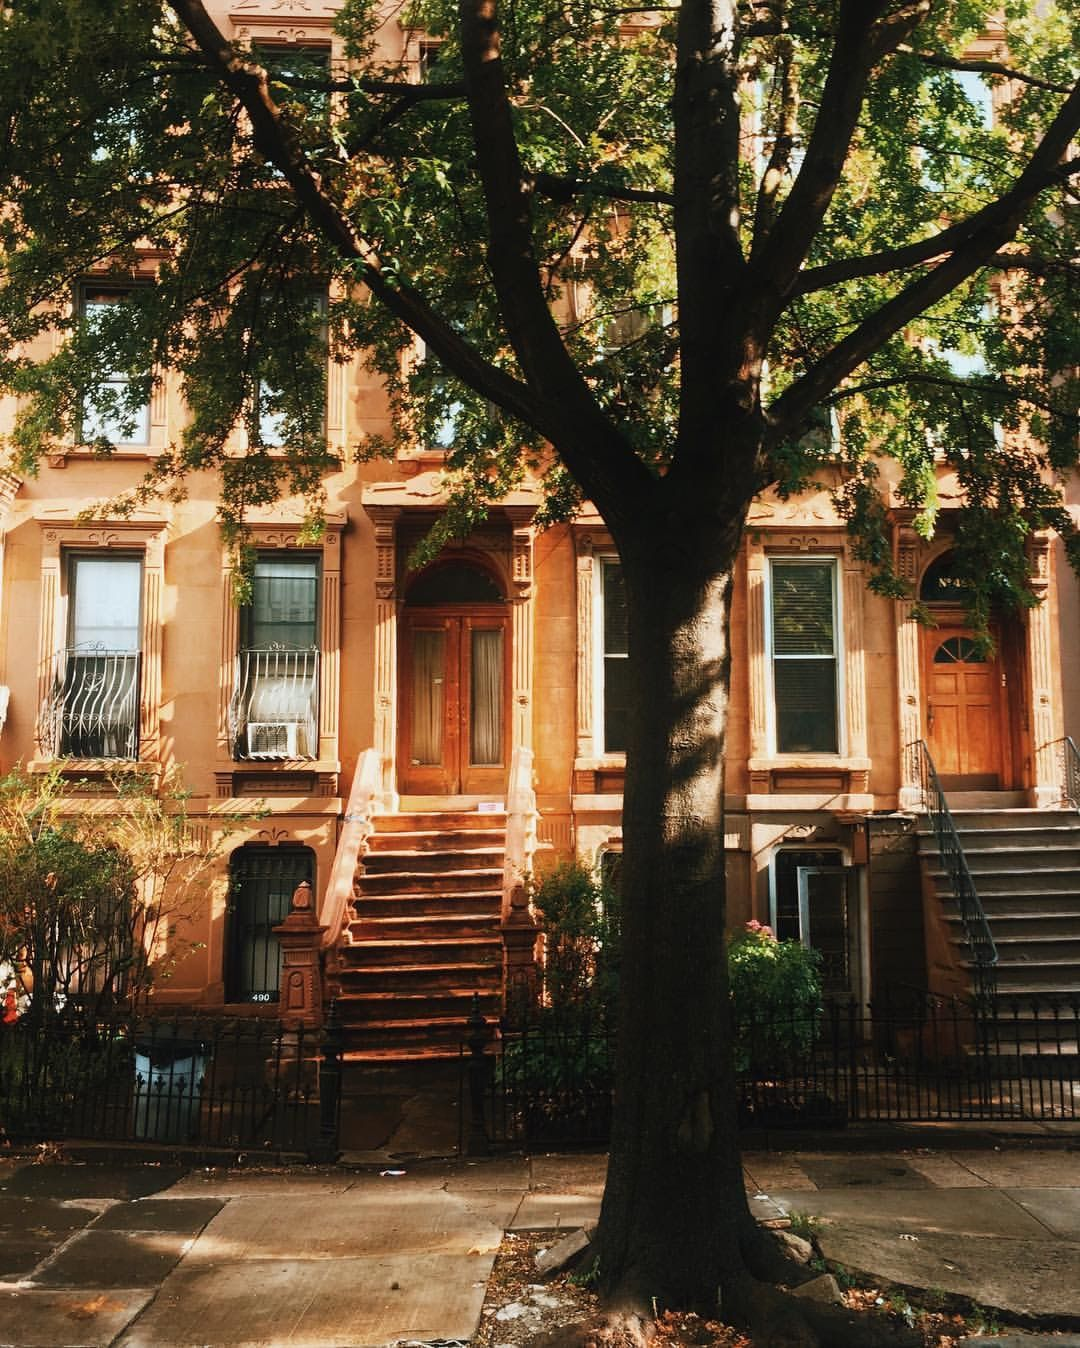 Bedford, Stuyvesant - Brooklyn by Davy Kesey | Places & Scenery ...